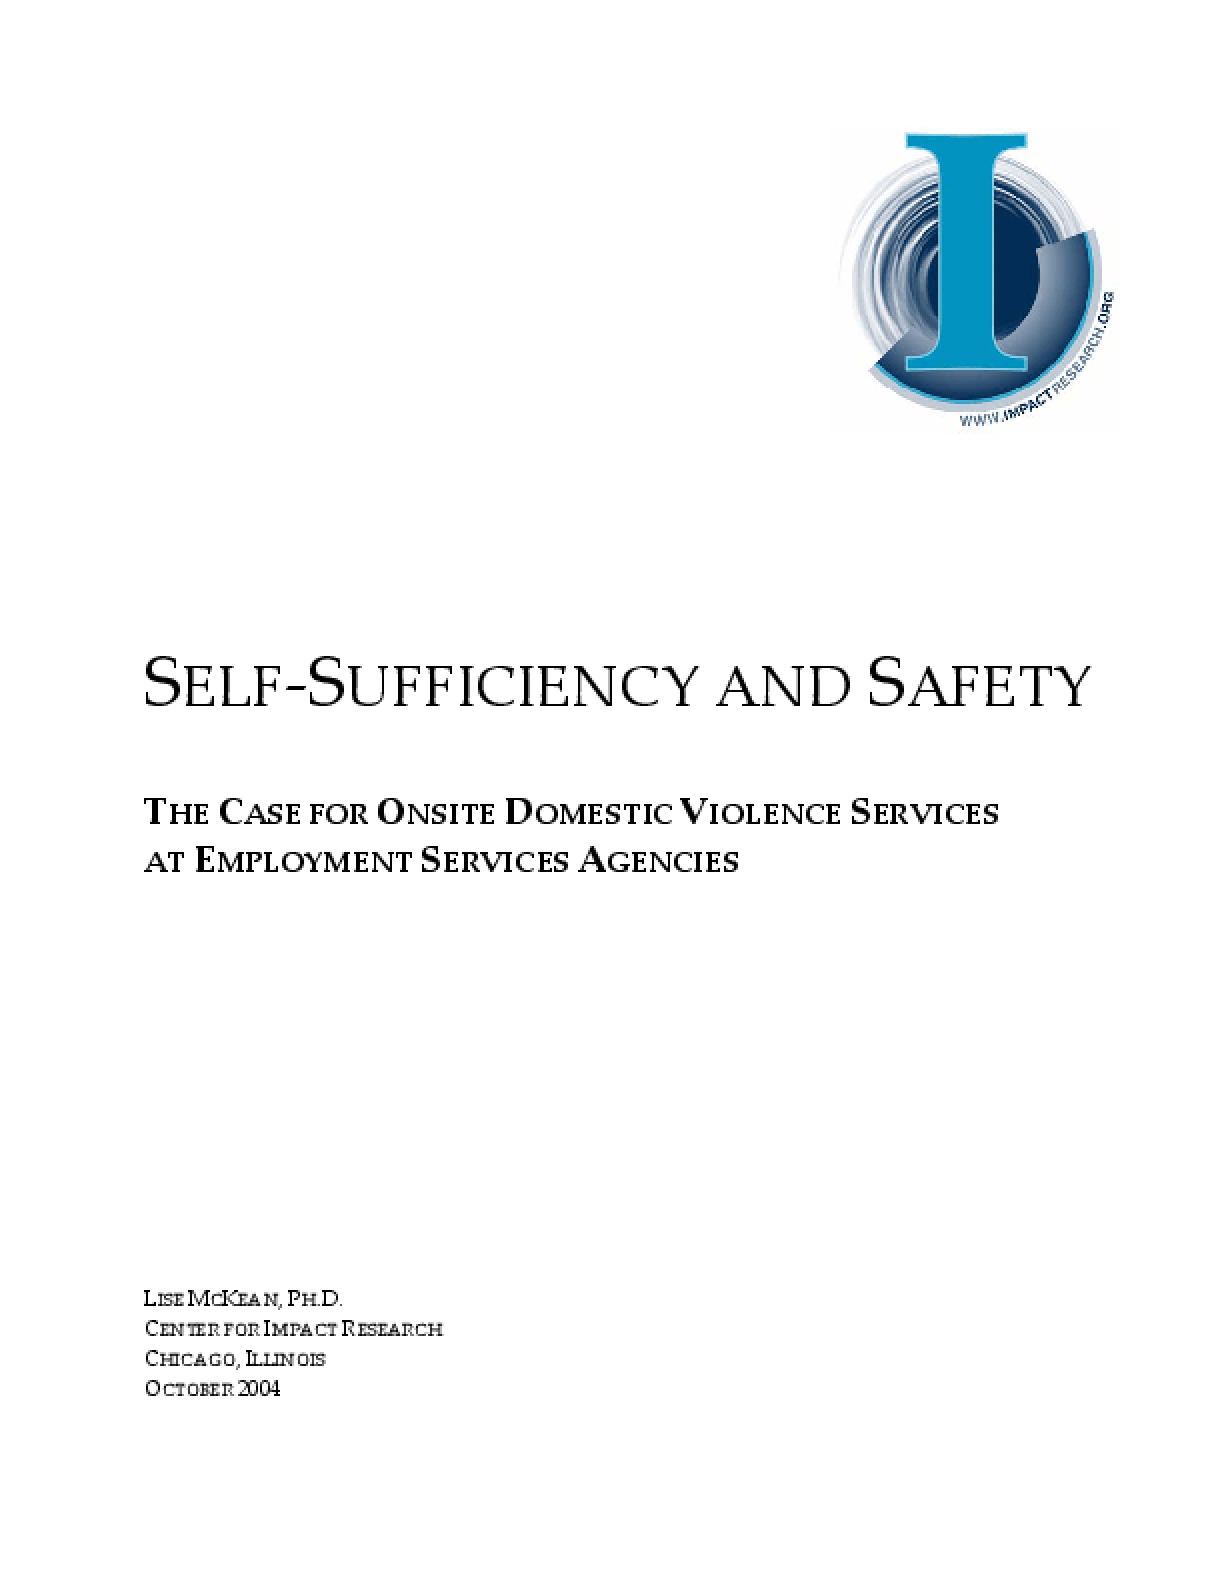 Self-Sufficiency and Safety: The Case for Onsite Domestic Violence Services at Employment Services Agencies